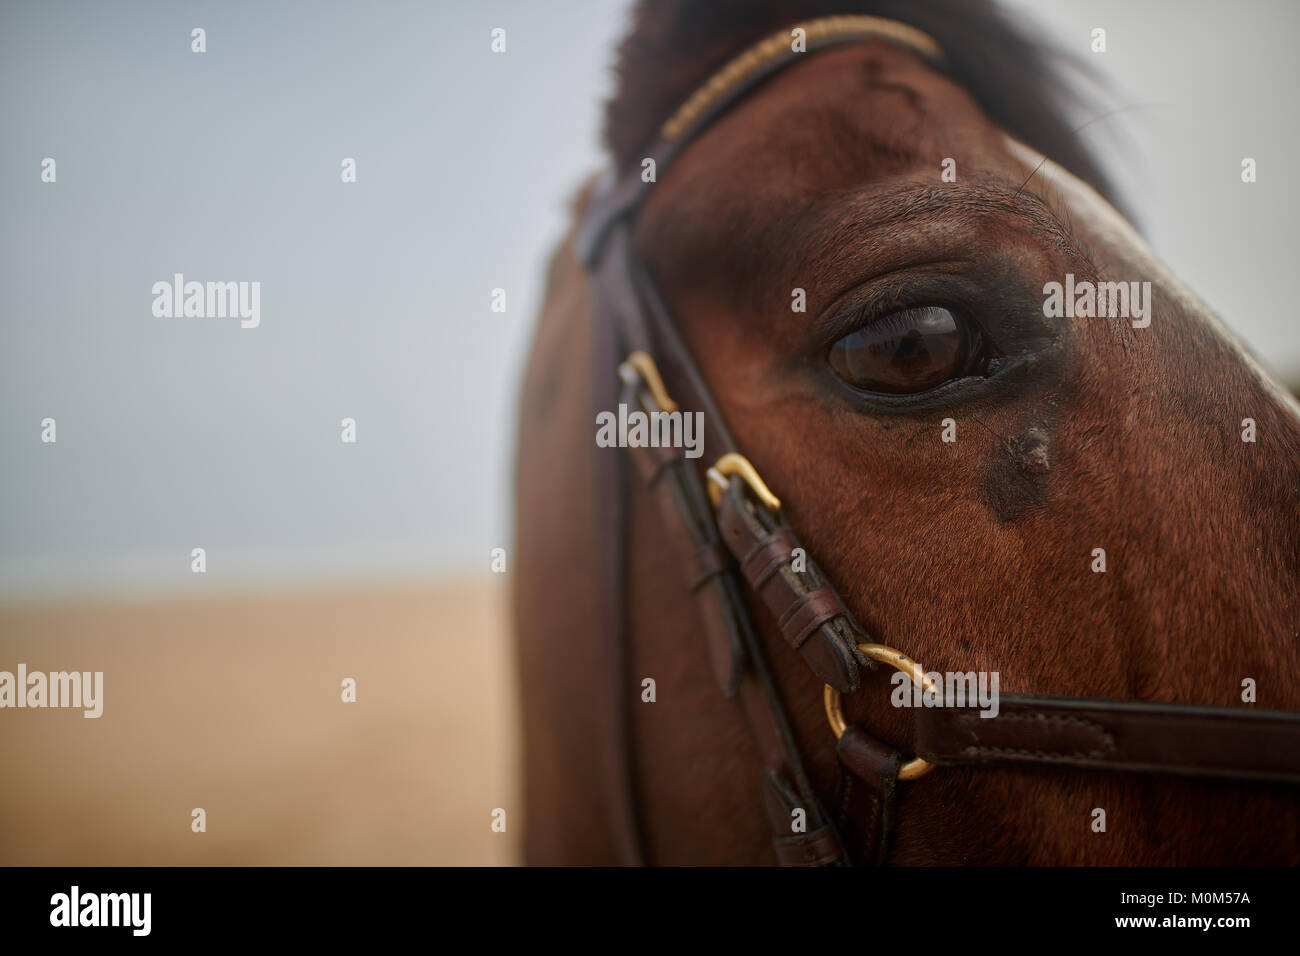 Horse eye close up taken on a beach with full riding gear equipped, male horse with a narrow depth of field. - Stock Image